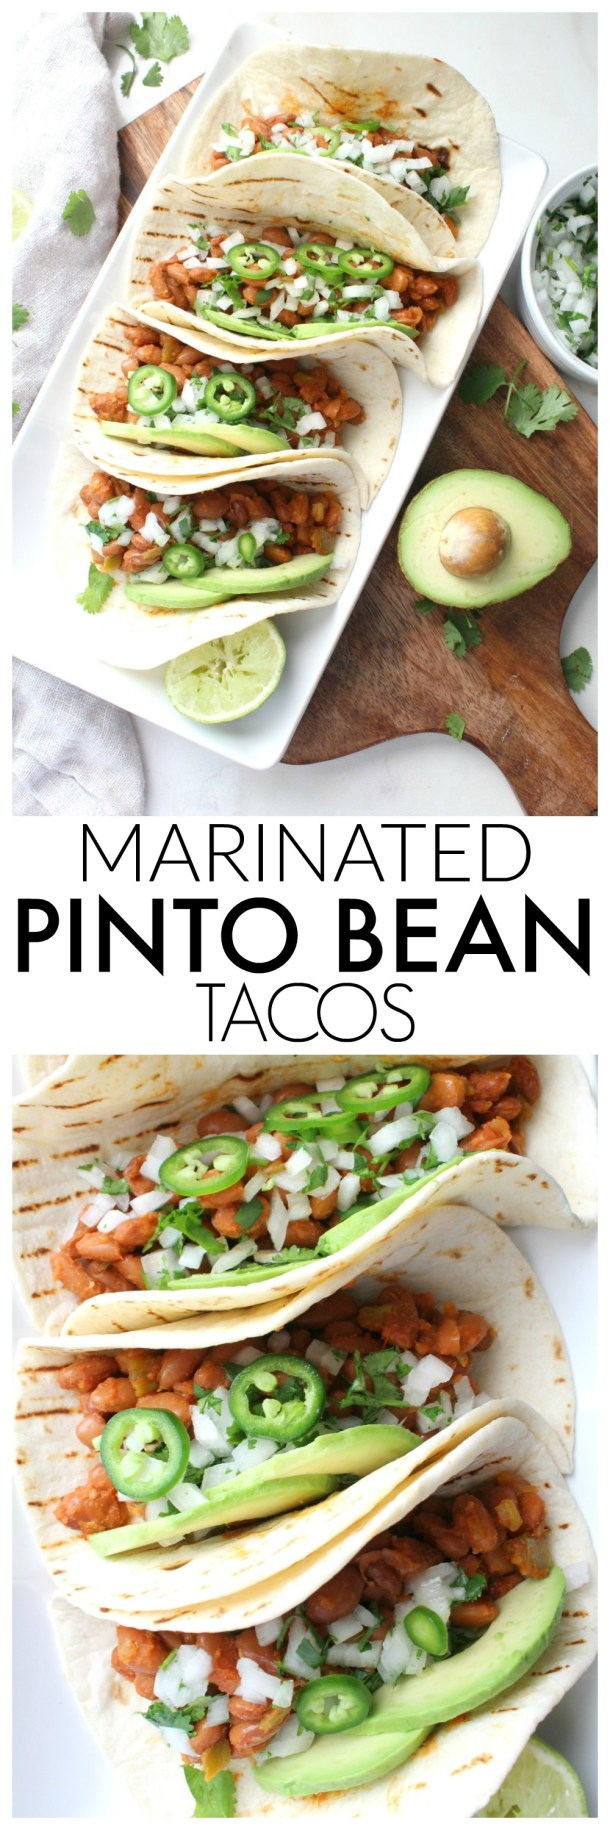 TheseMarinated Pinto Bean Tacos are healthy, vegan and super simple. With just a few ingredients and 30 minutes, you can have Taco Tuesday at home! | ThisSavoryVegan.com #vegan #vegantacos